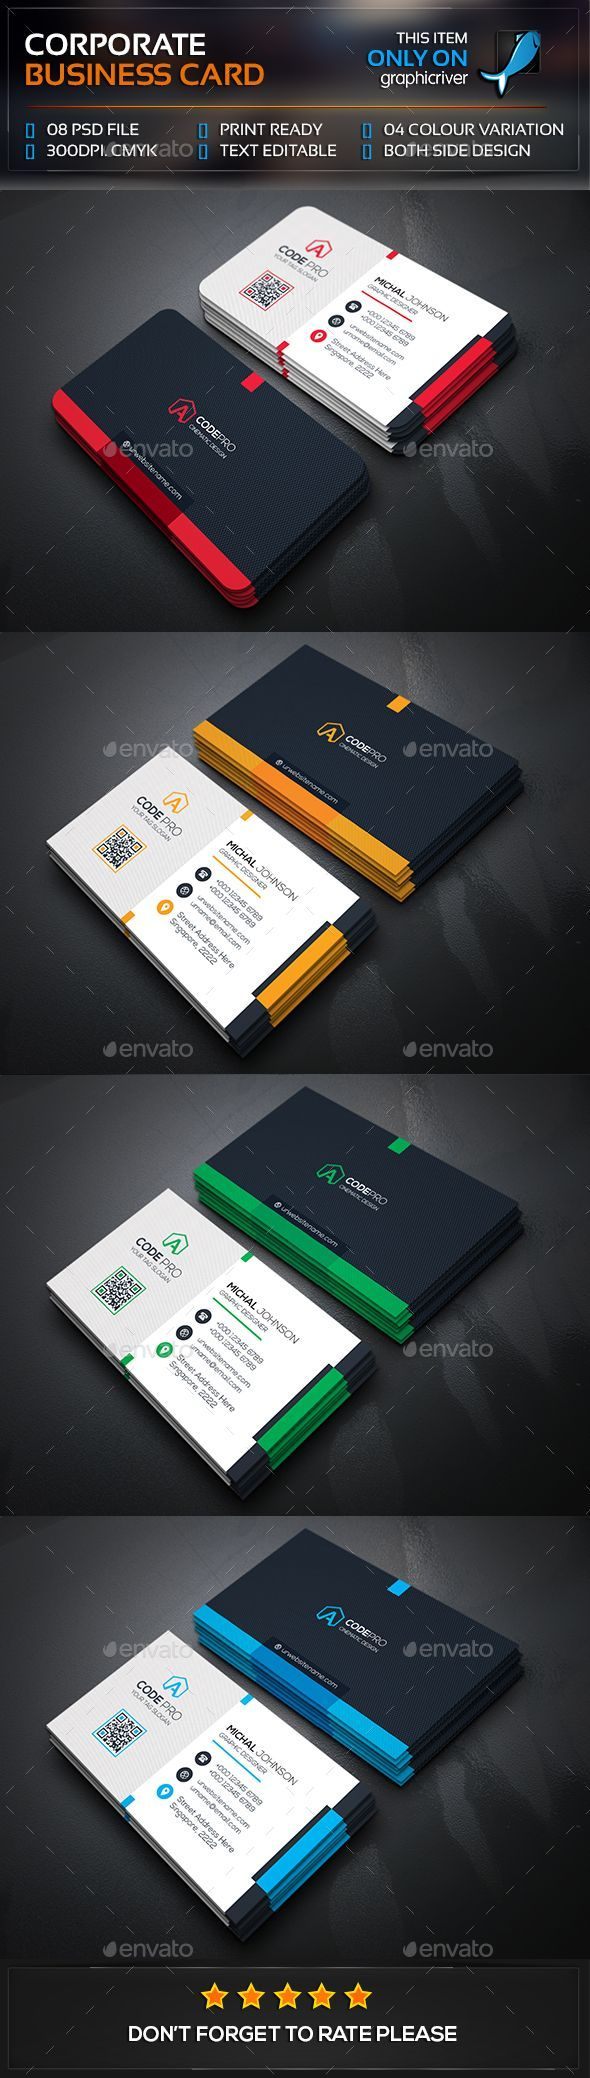 2334 best business card images on pinterest business card design mega corporate business card template psd visitcard design download http reheart Choice Image